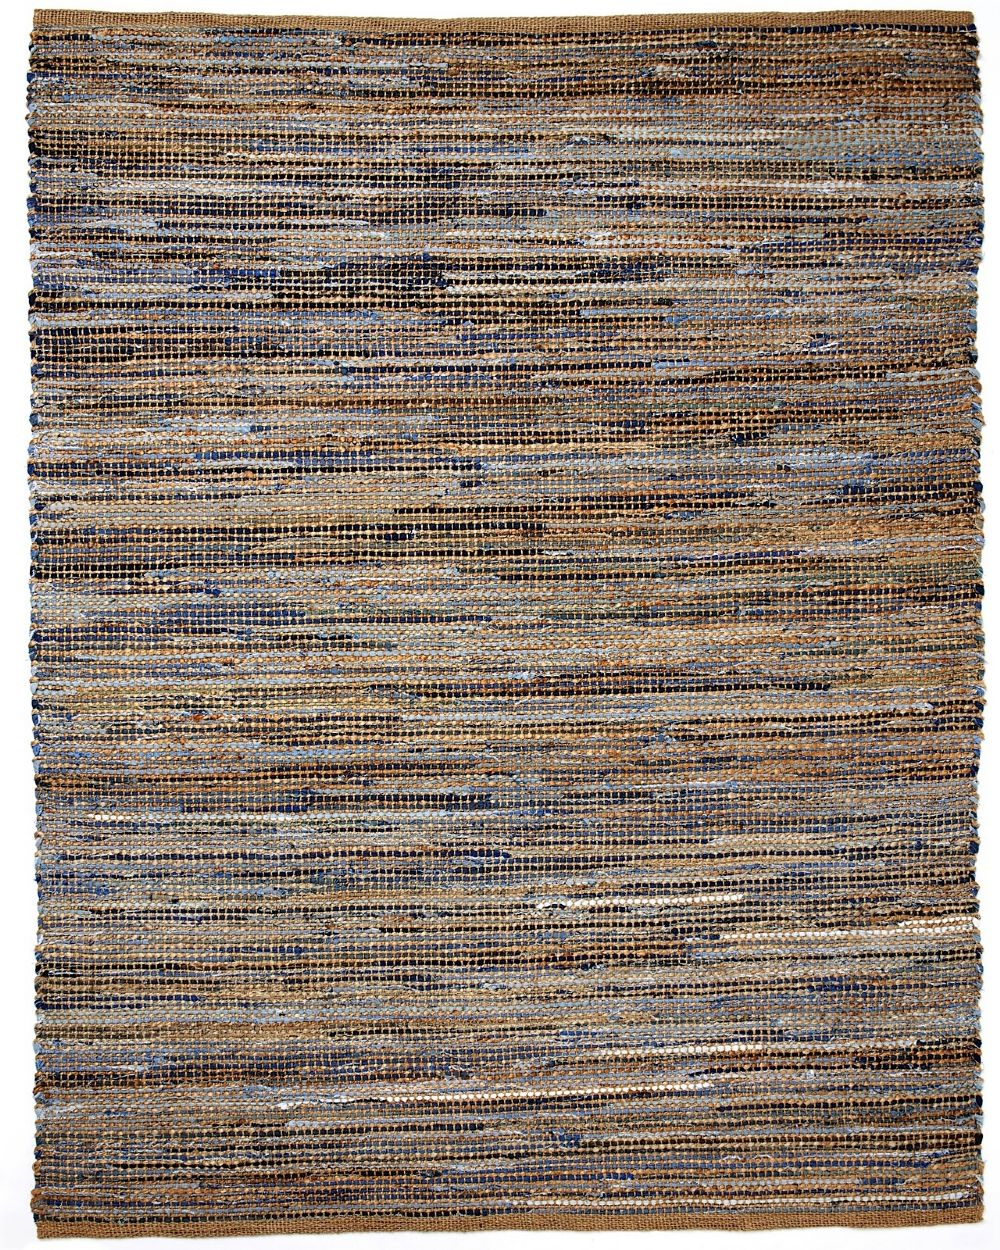 anji mountain american graffiti natural fiber area rug collection